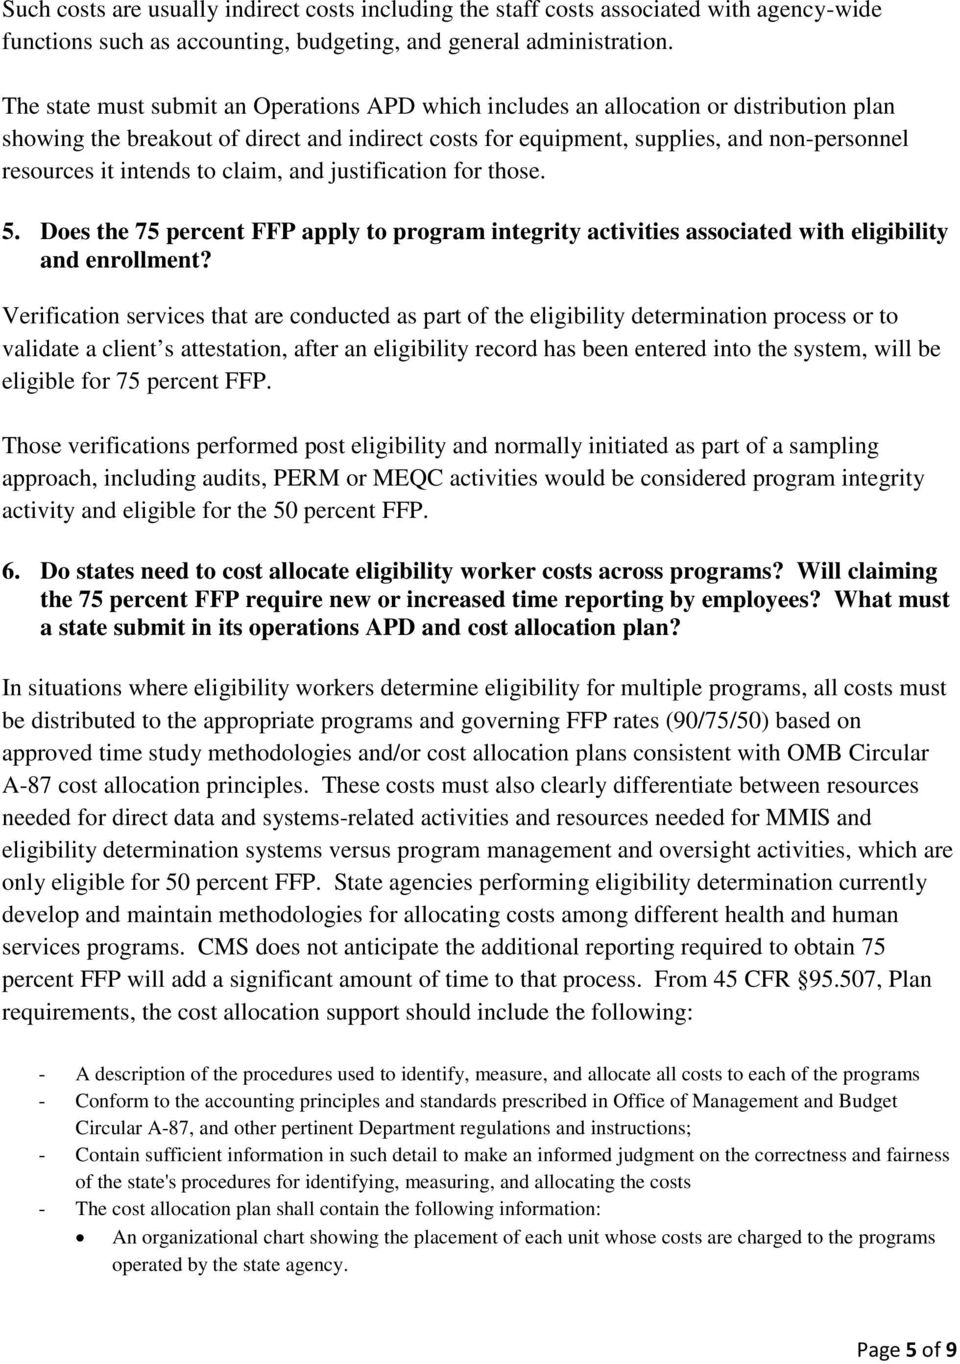 intends to claim, and justification for those. 5. Does the 75 percent FFP apply to program integrity activities associated with eligibility and enrollment?